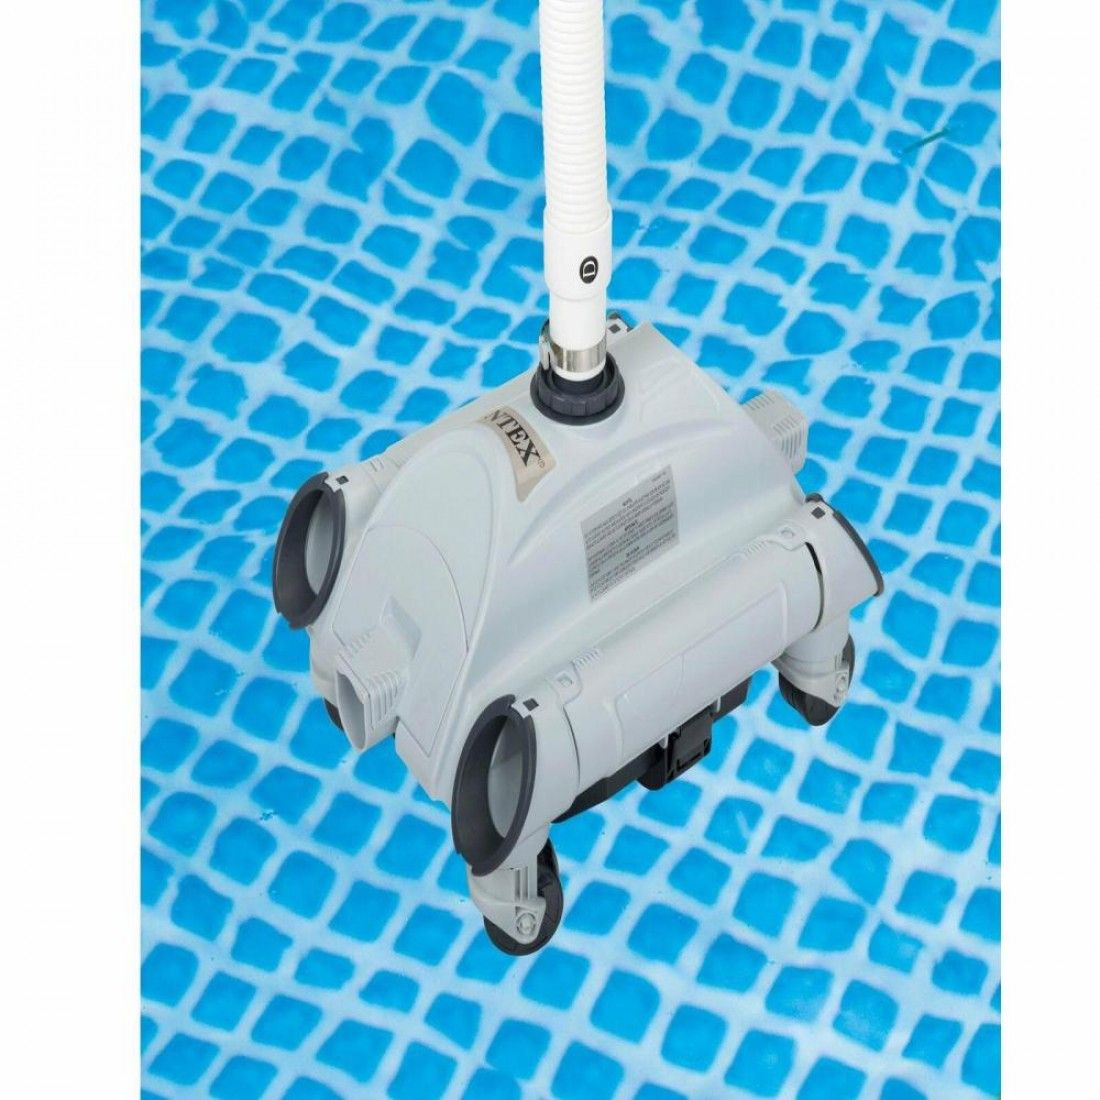 Intex 3000 GPH Above Ground Pool GFCI Sand Filter Pump and